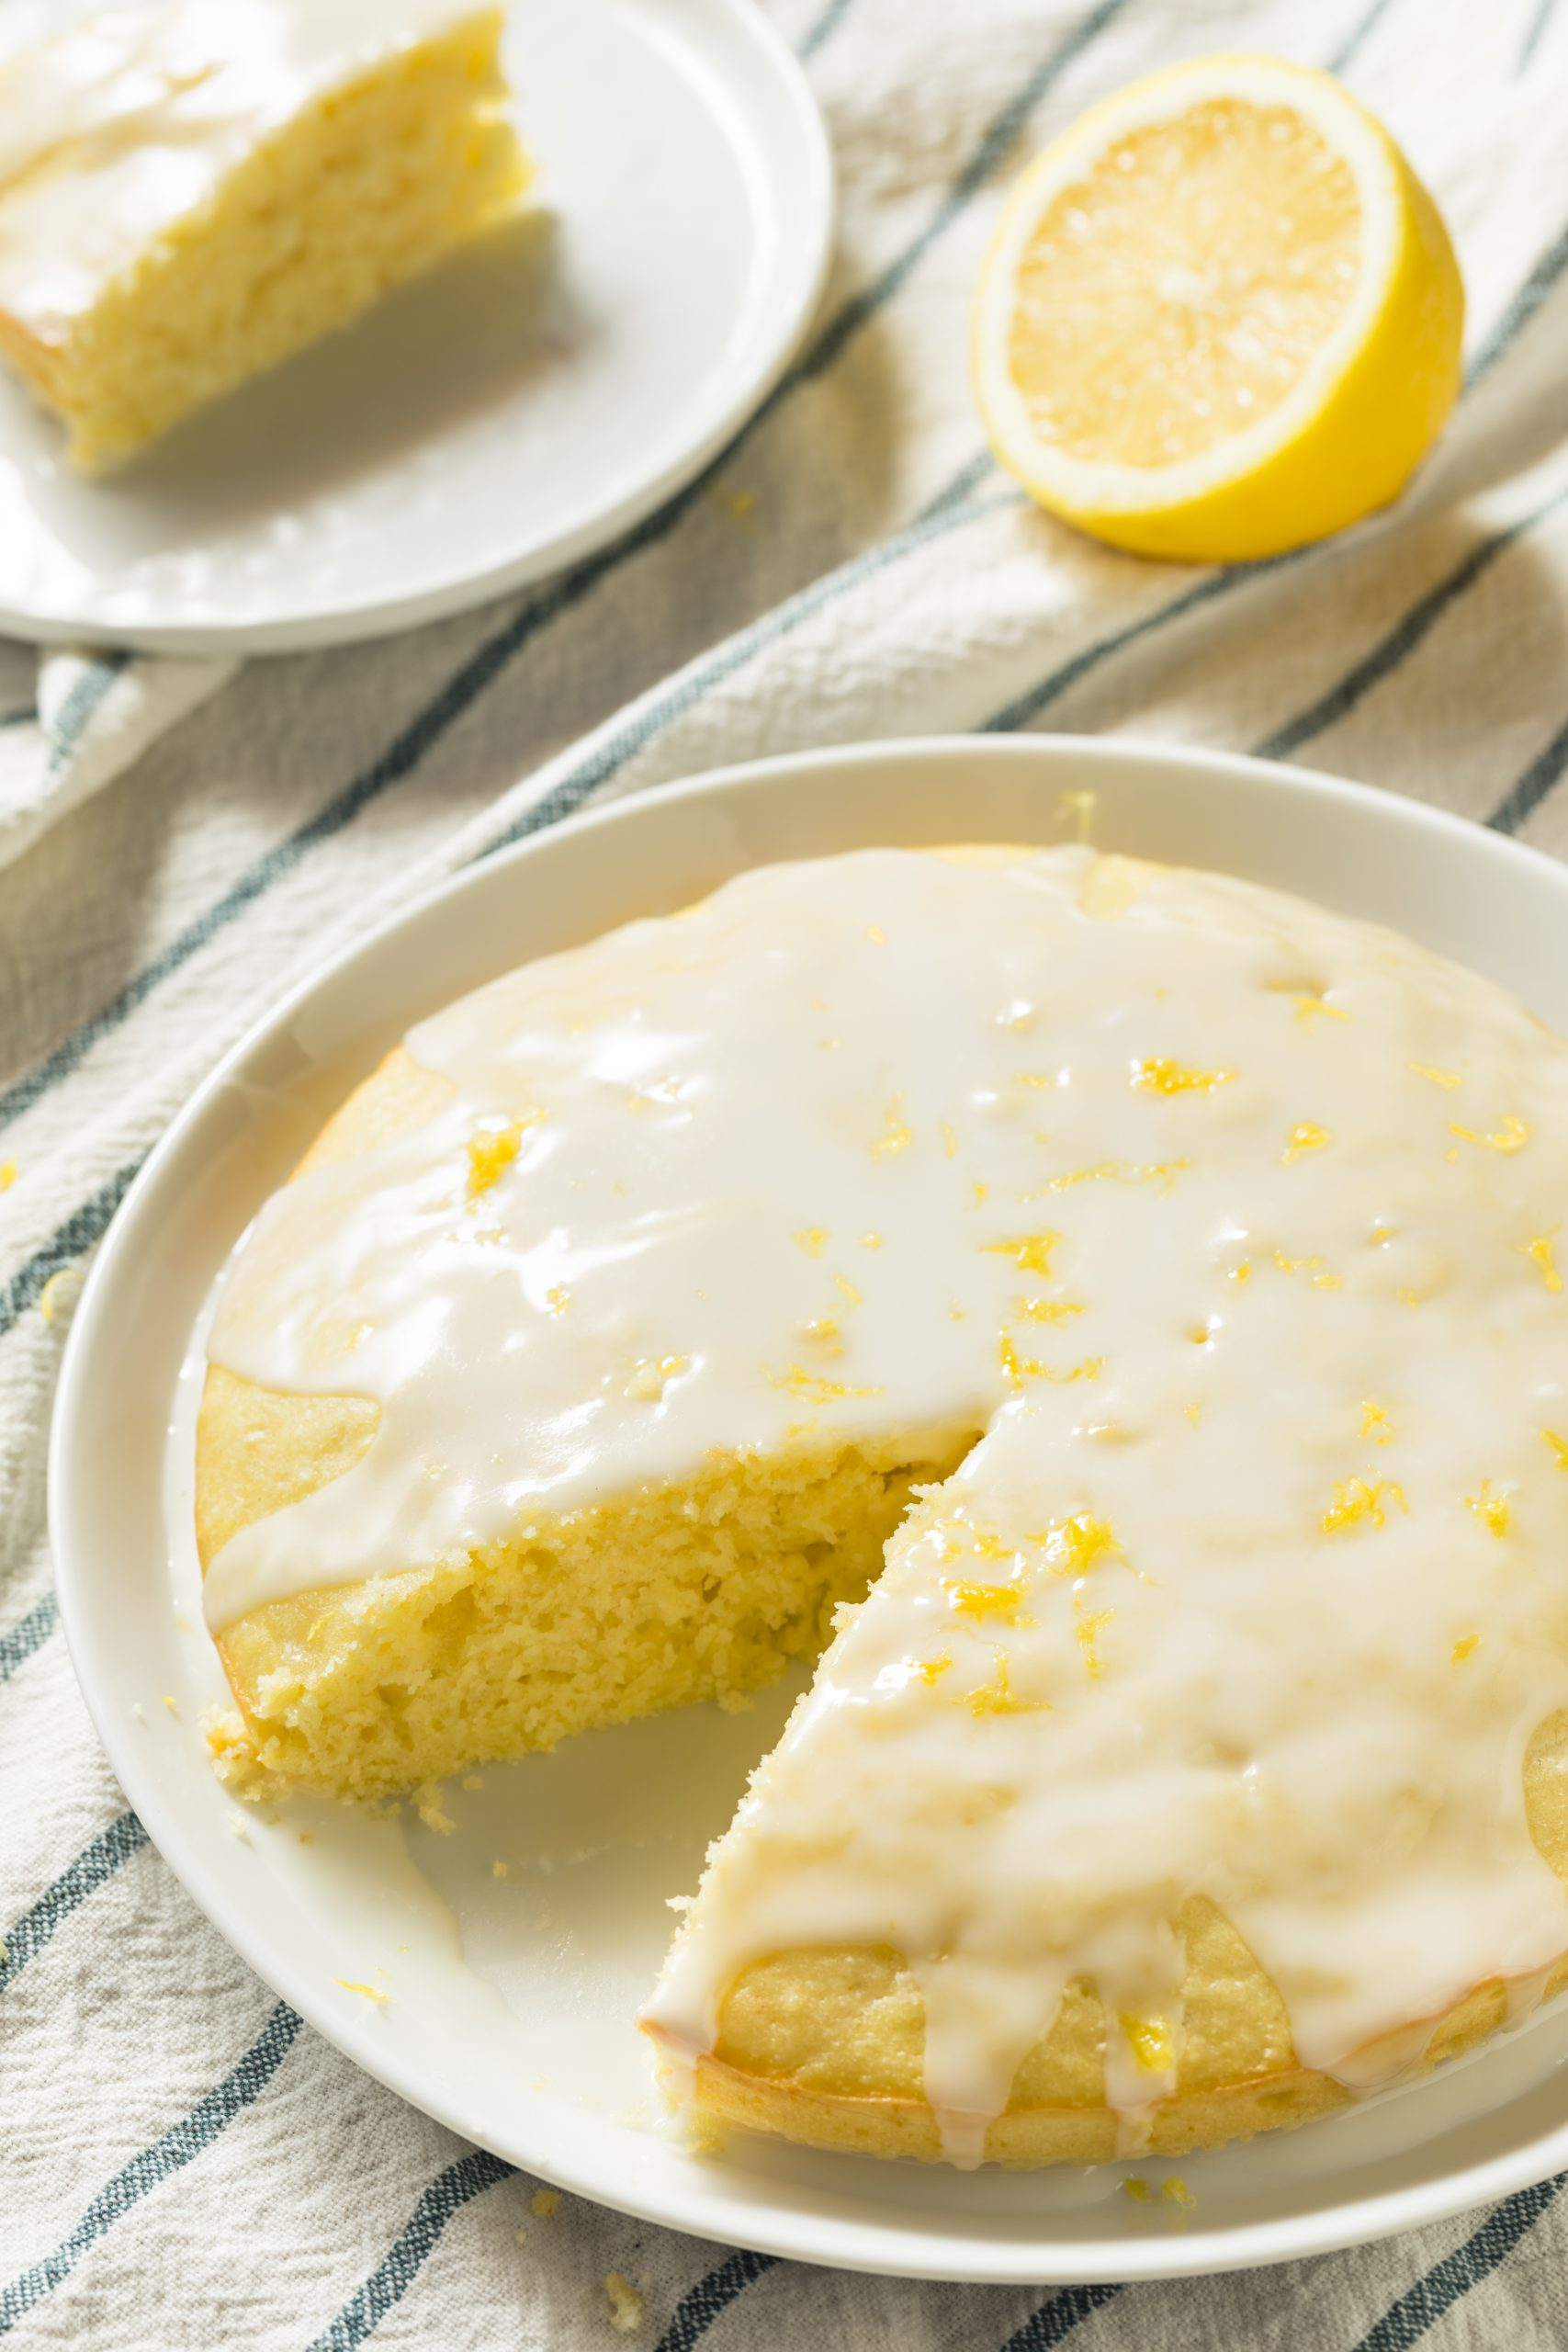 Looking for a delicious summery treat to make for your next dessert? The whole family is sure to love this Lemonade Poke Cake Recipe